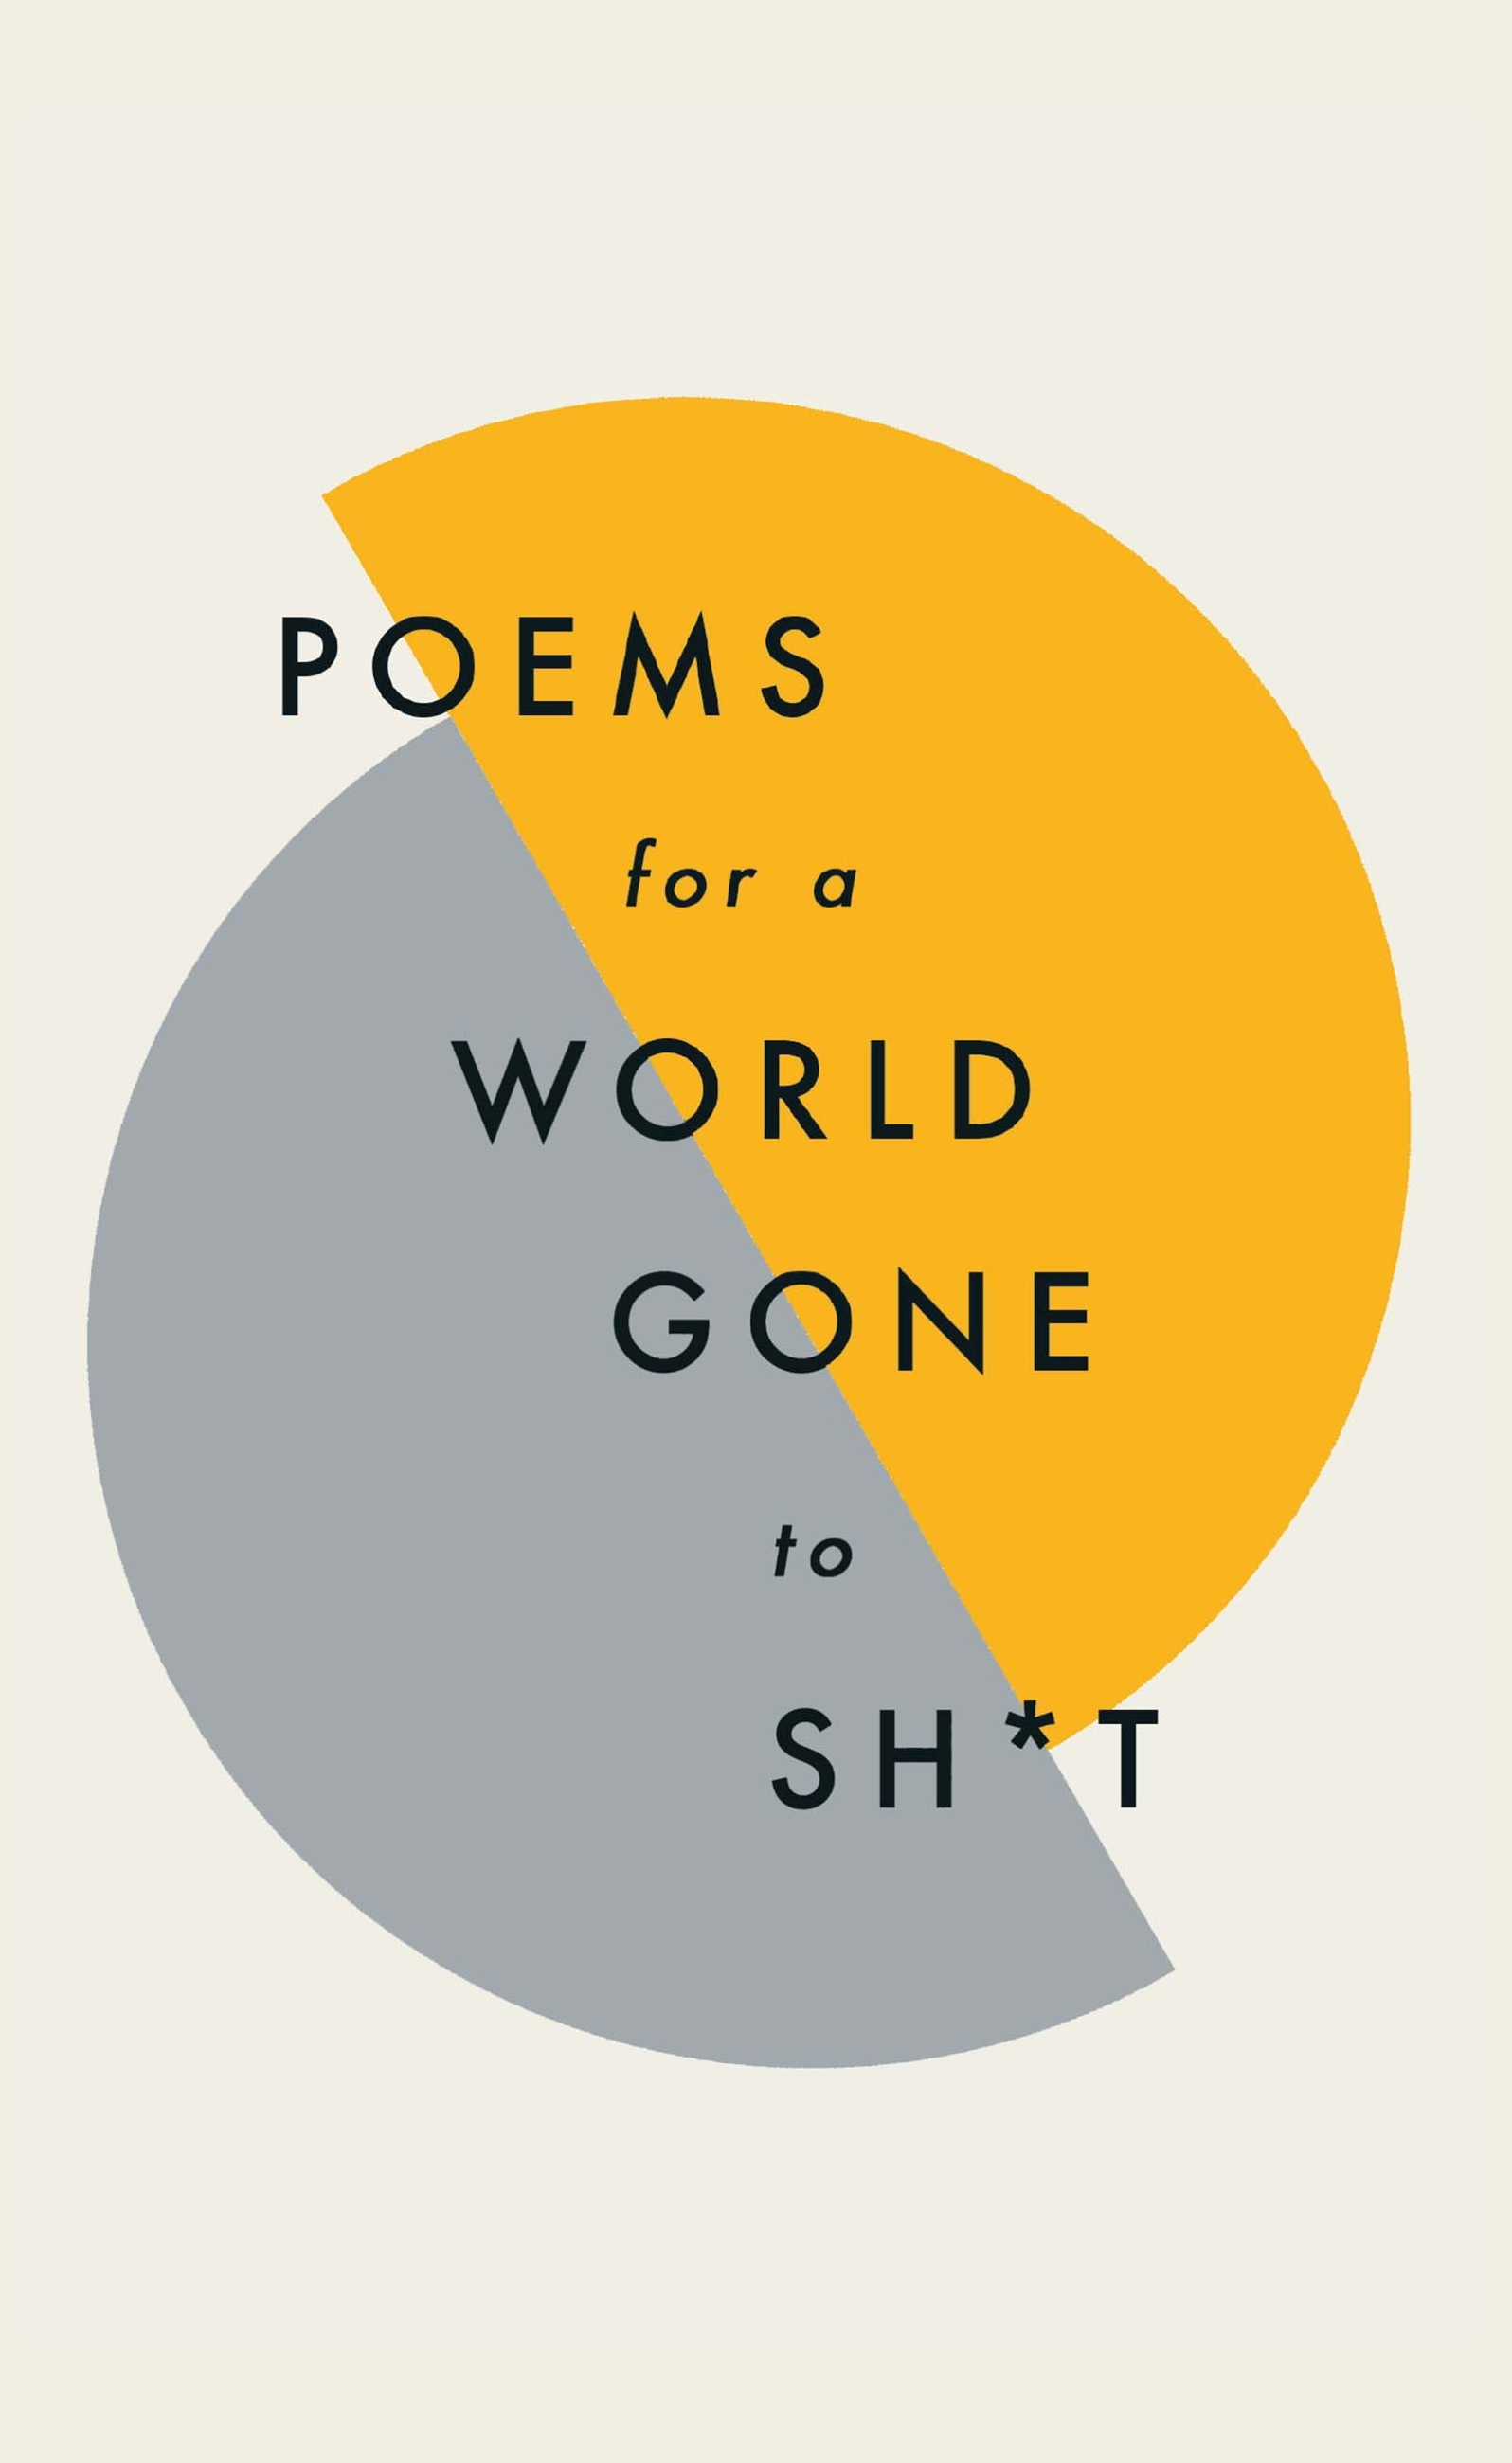 Poems for a world gone to sh*t